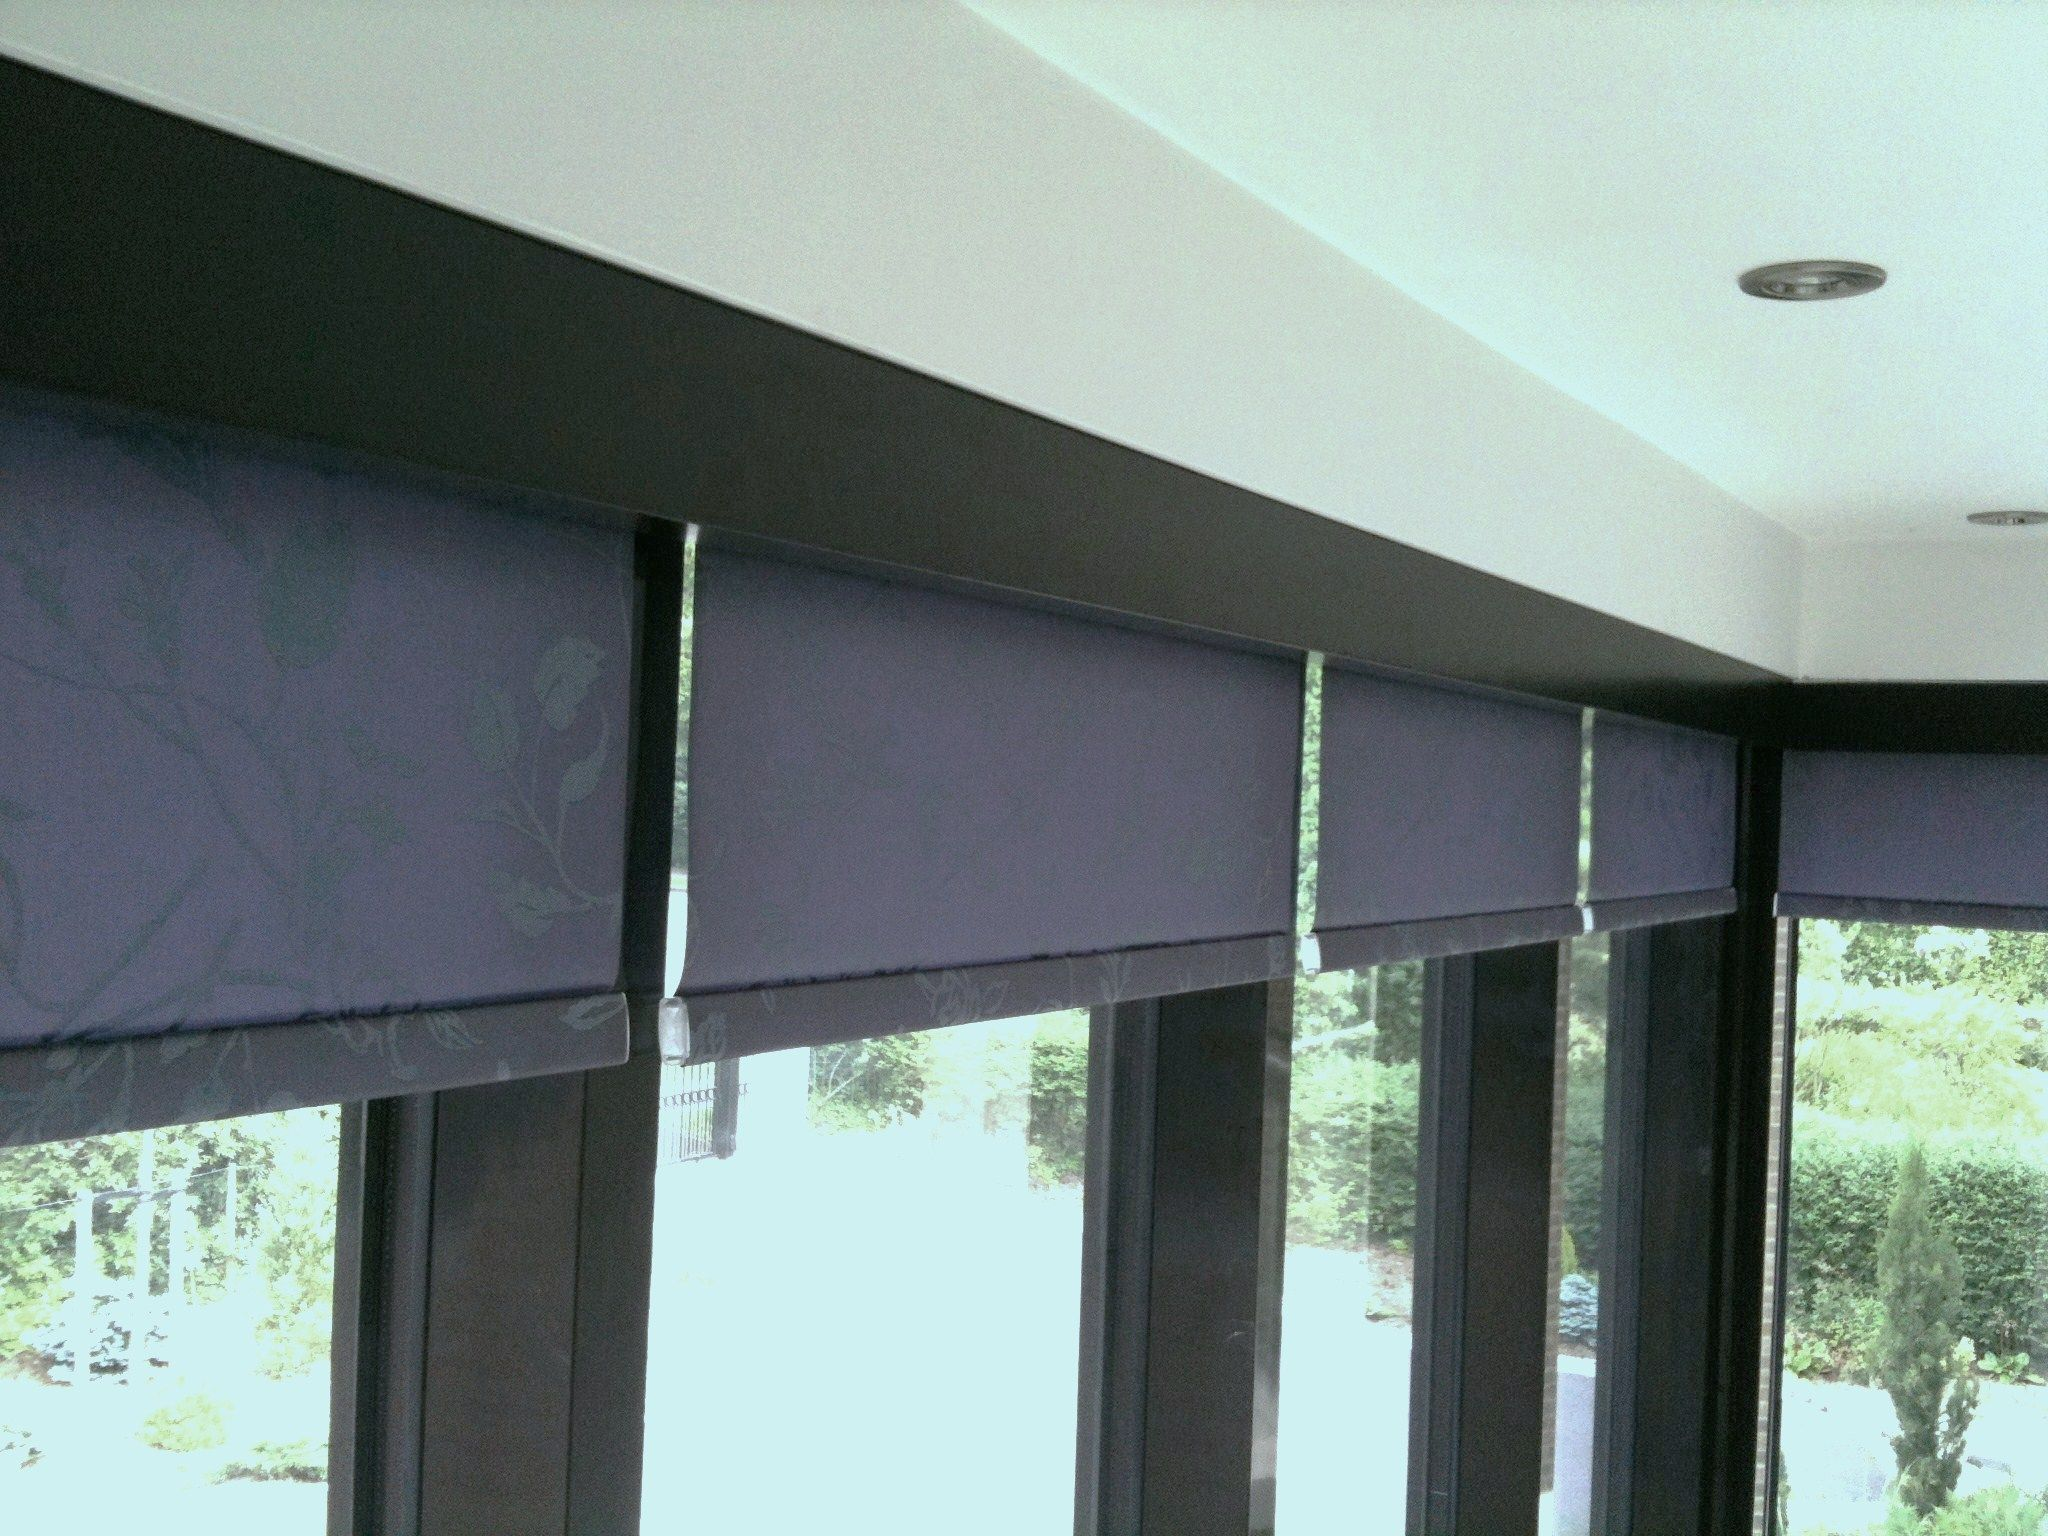 Office Roller Blinds : Office blinds to hide the roller and match